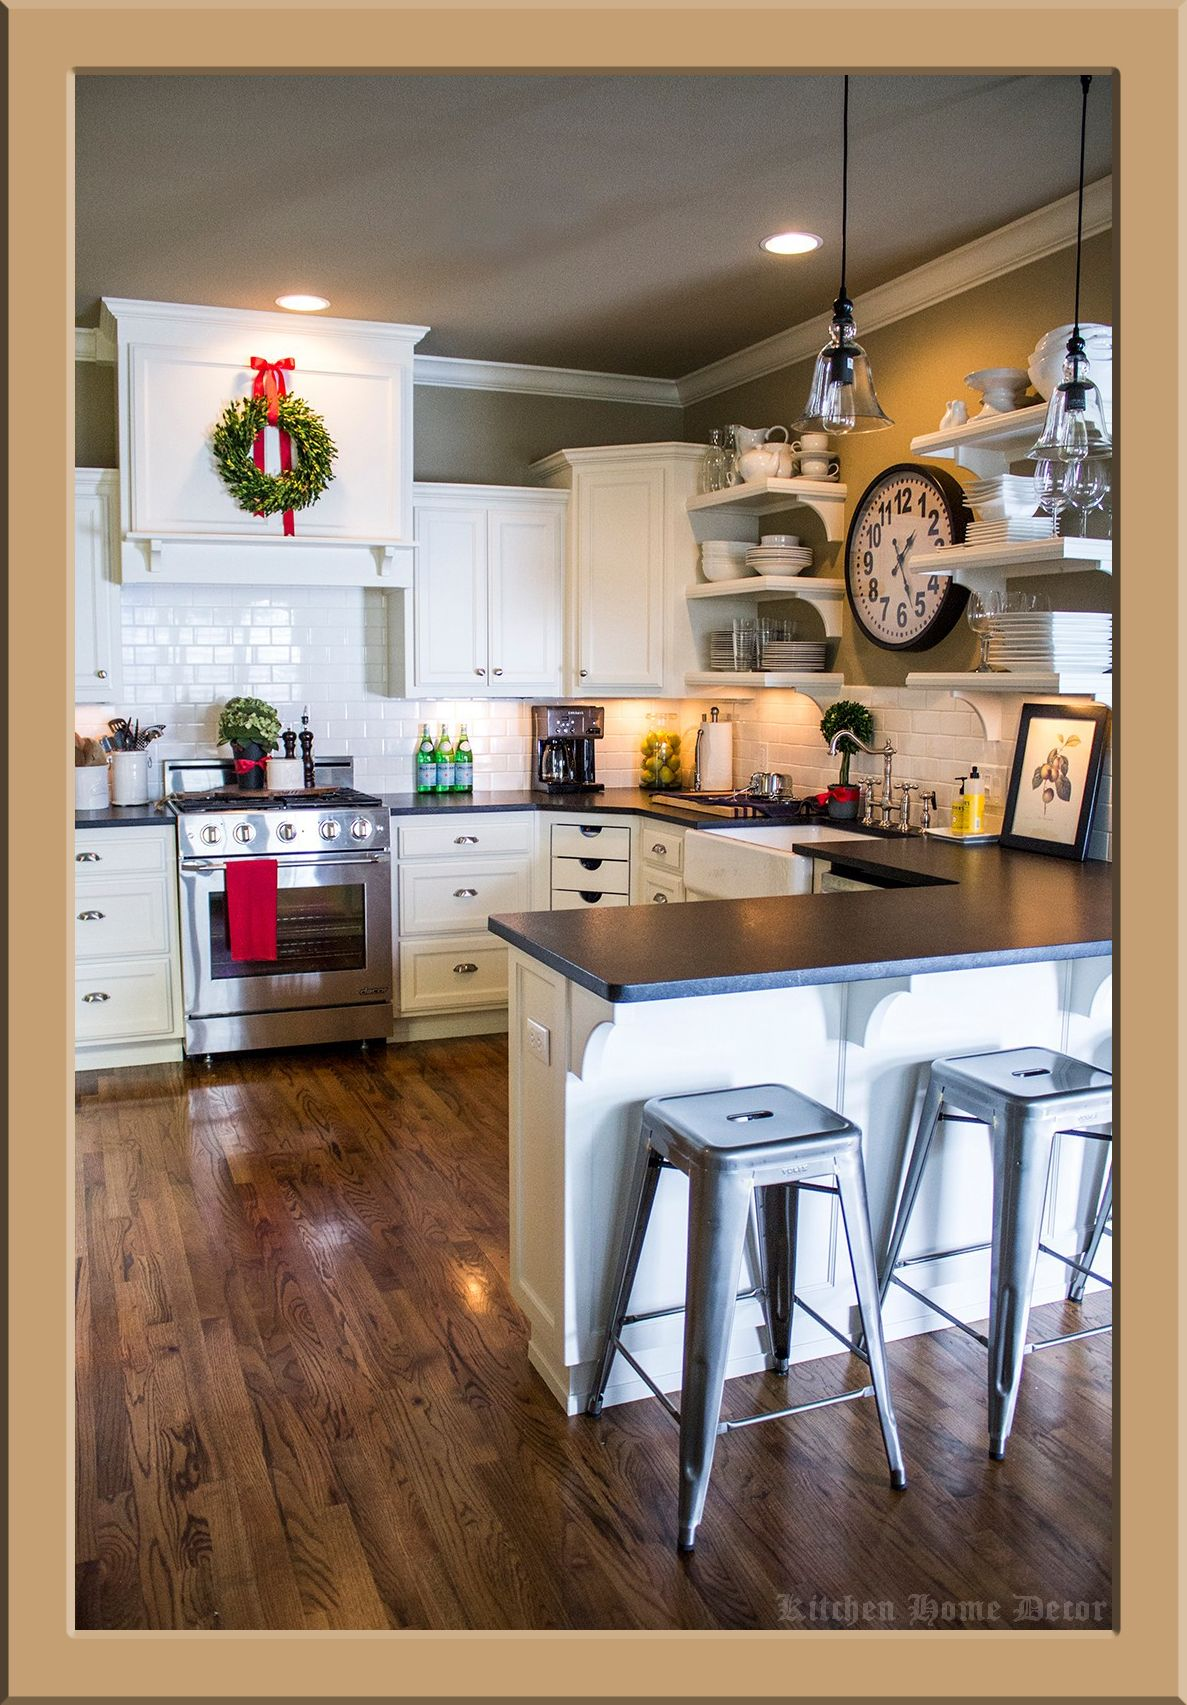 Build A Kitchen Decor Anyone Would Be Proud Of